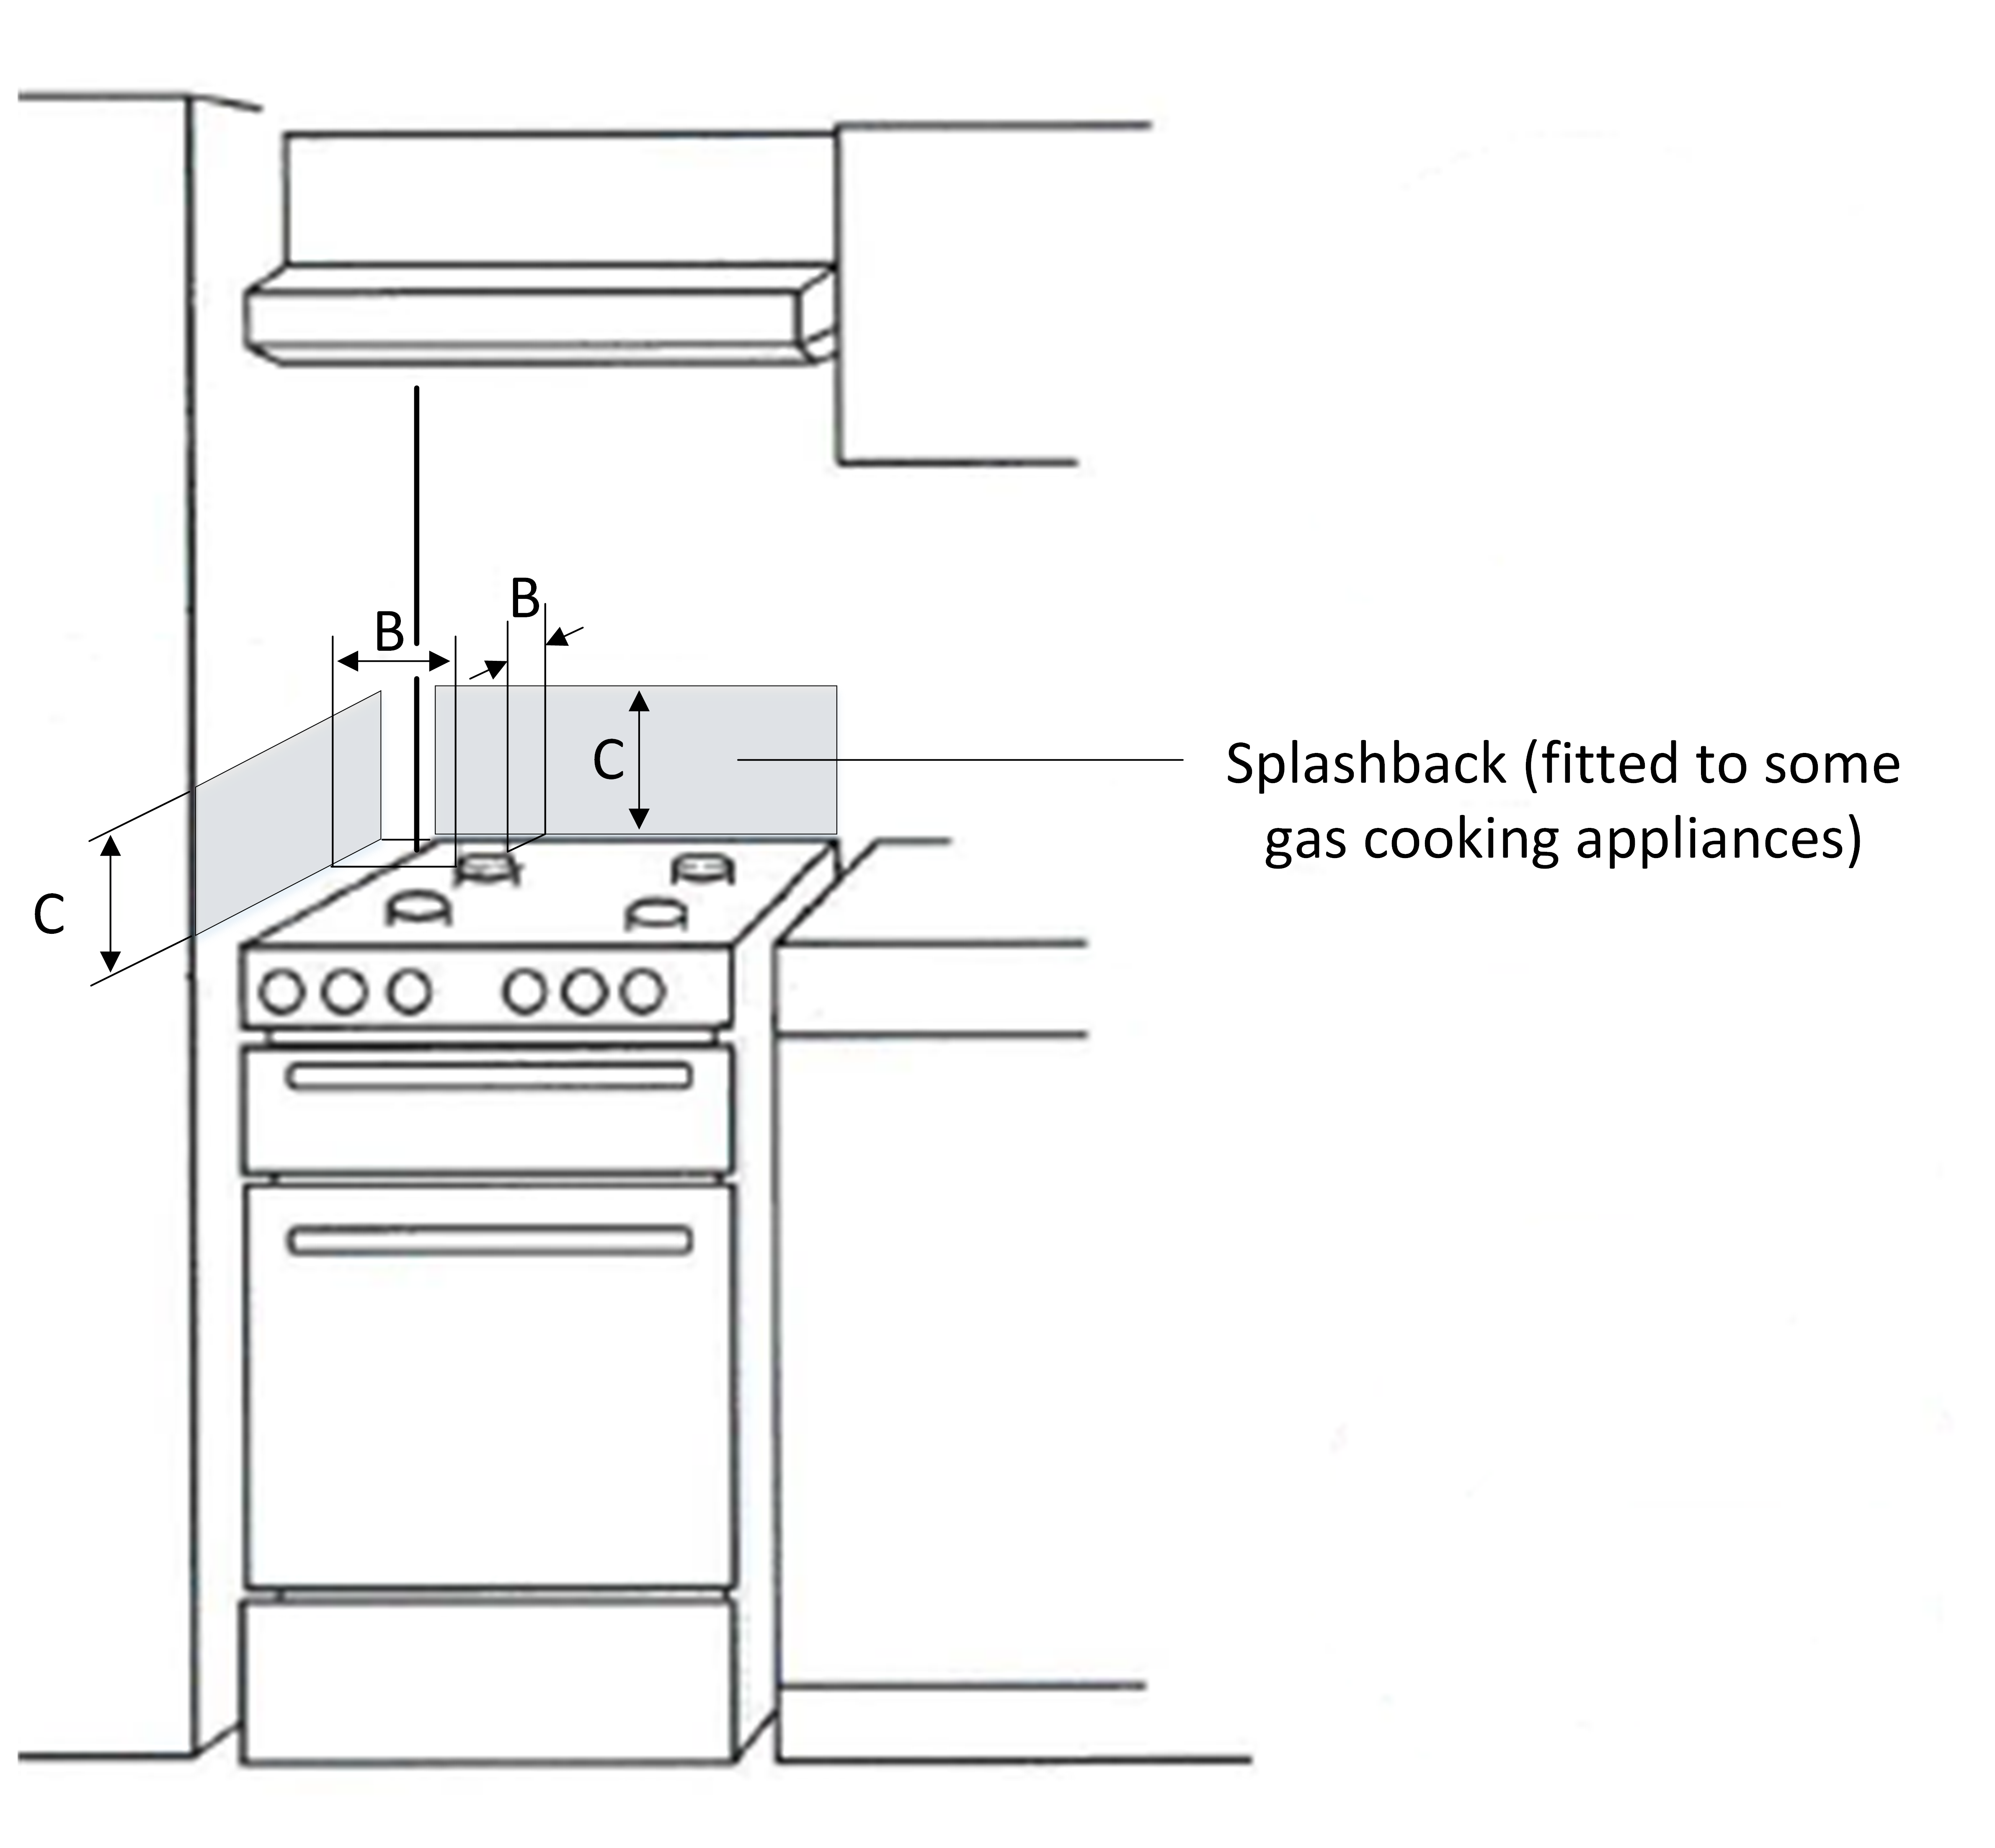 Gas Information Sheet 25 Domestic Cooking Appliance Clearances Cook Top And Light Fan Wiring Diagram Reproduced With Permission From Sai Global Ltd Under Licence 1503 C095